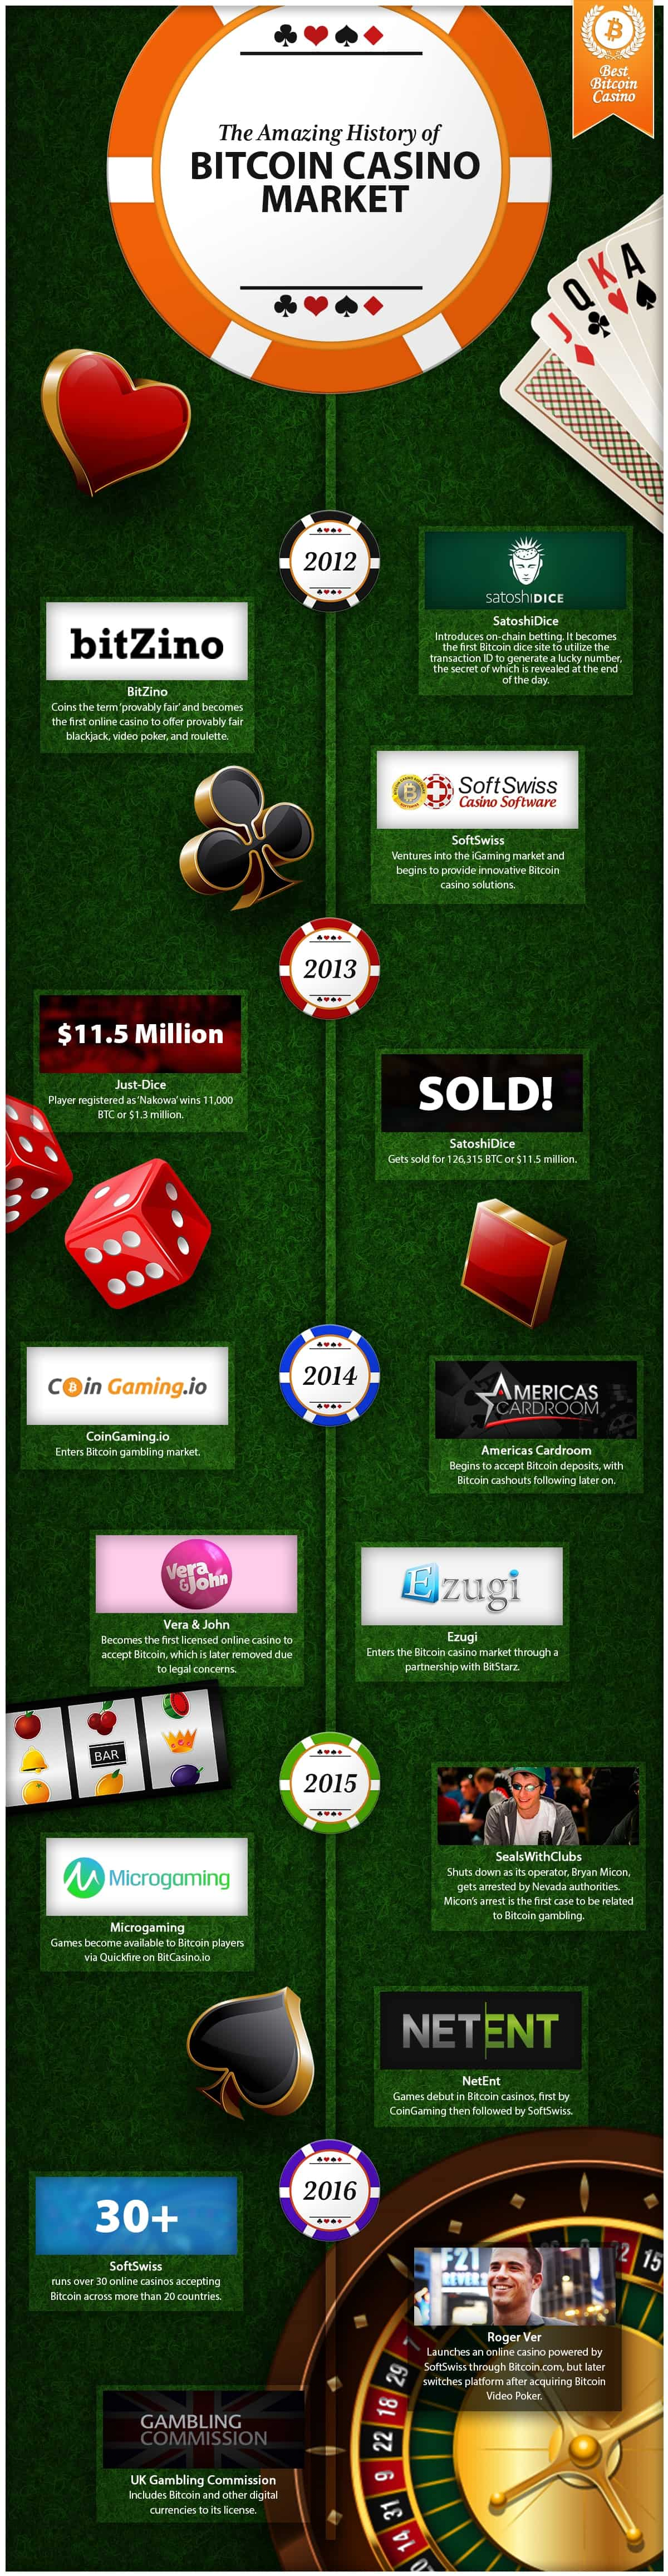 The Amazing History of Bitcoin Casino Market